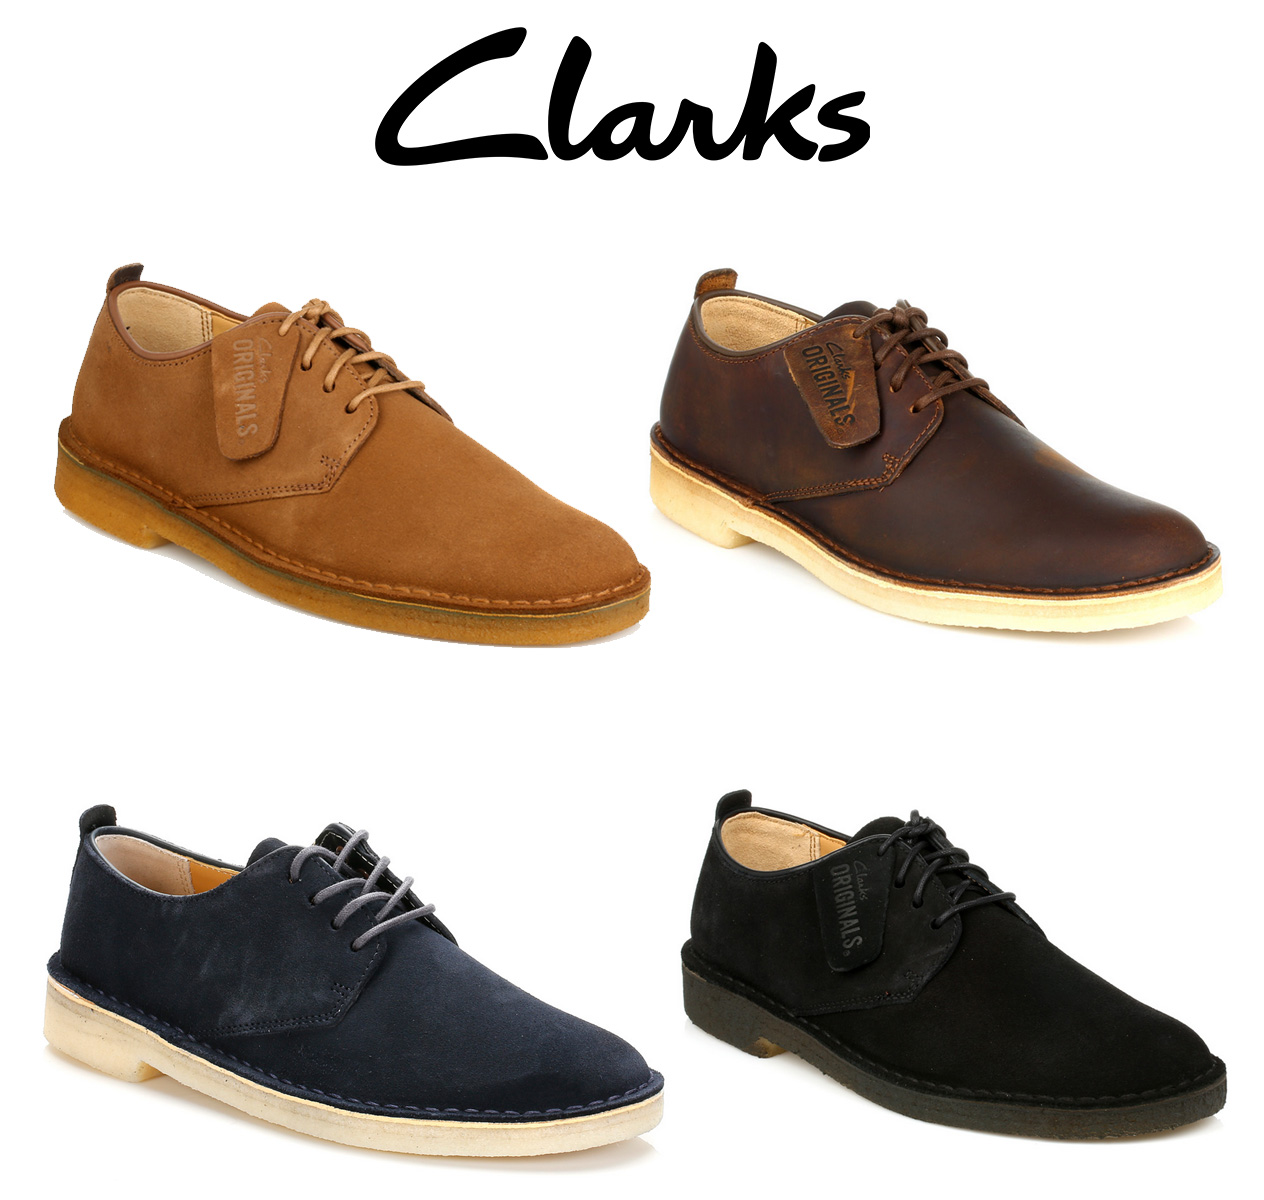 d562efc7f3ed The classic Clarks Desert London shoes are a modern twist on the Derby  style. In smooth leather or suede upper and with the signature contrasting  crepe sole ...